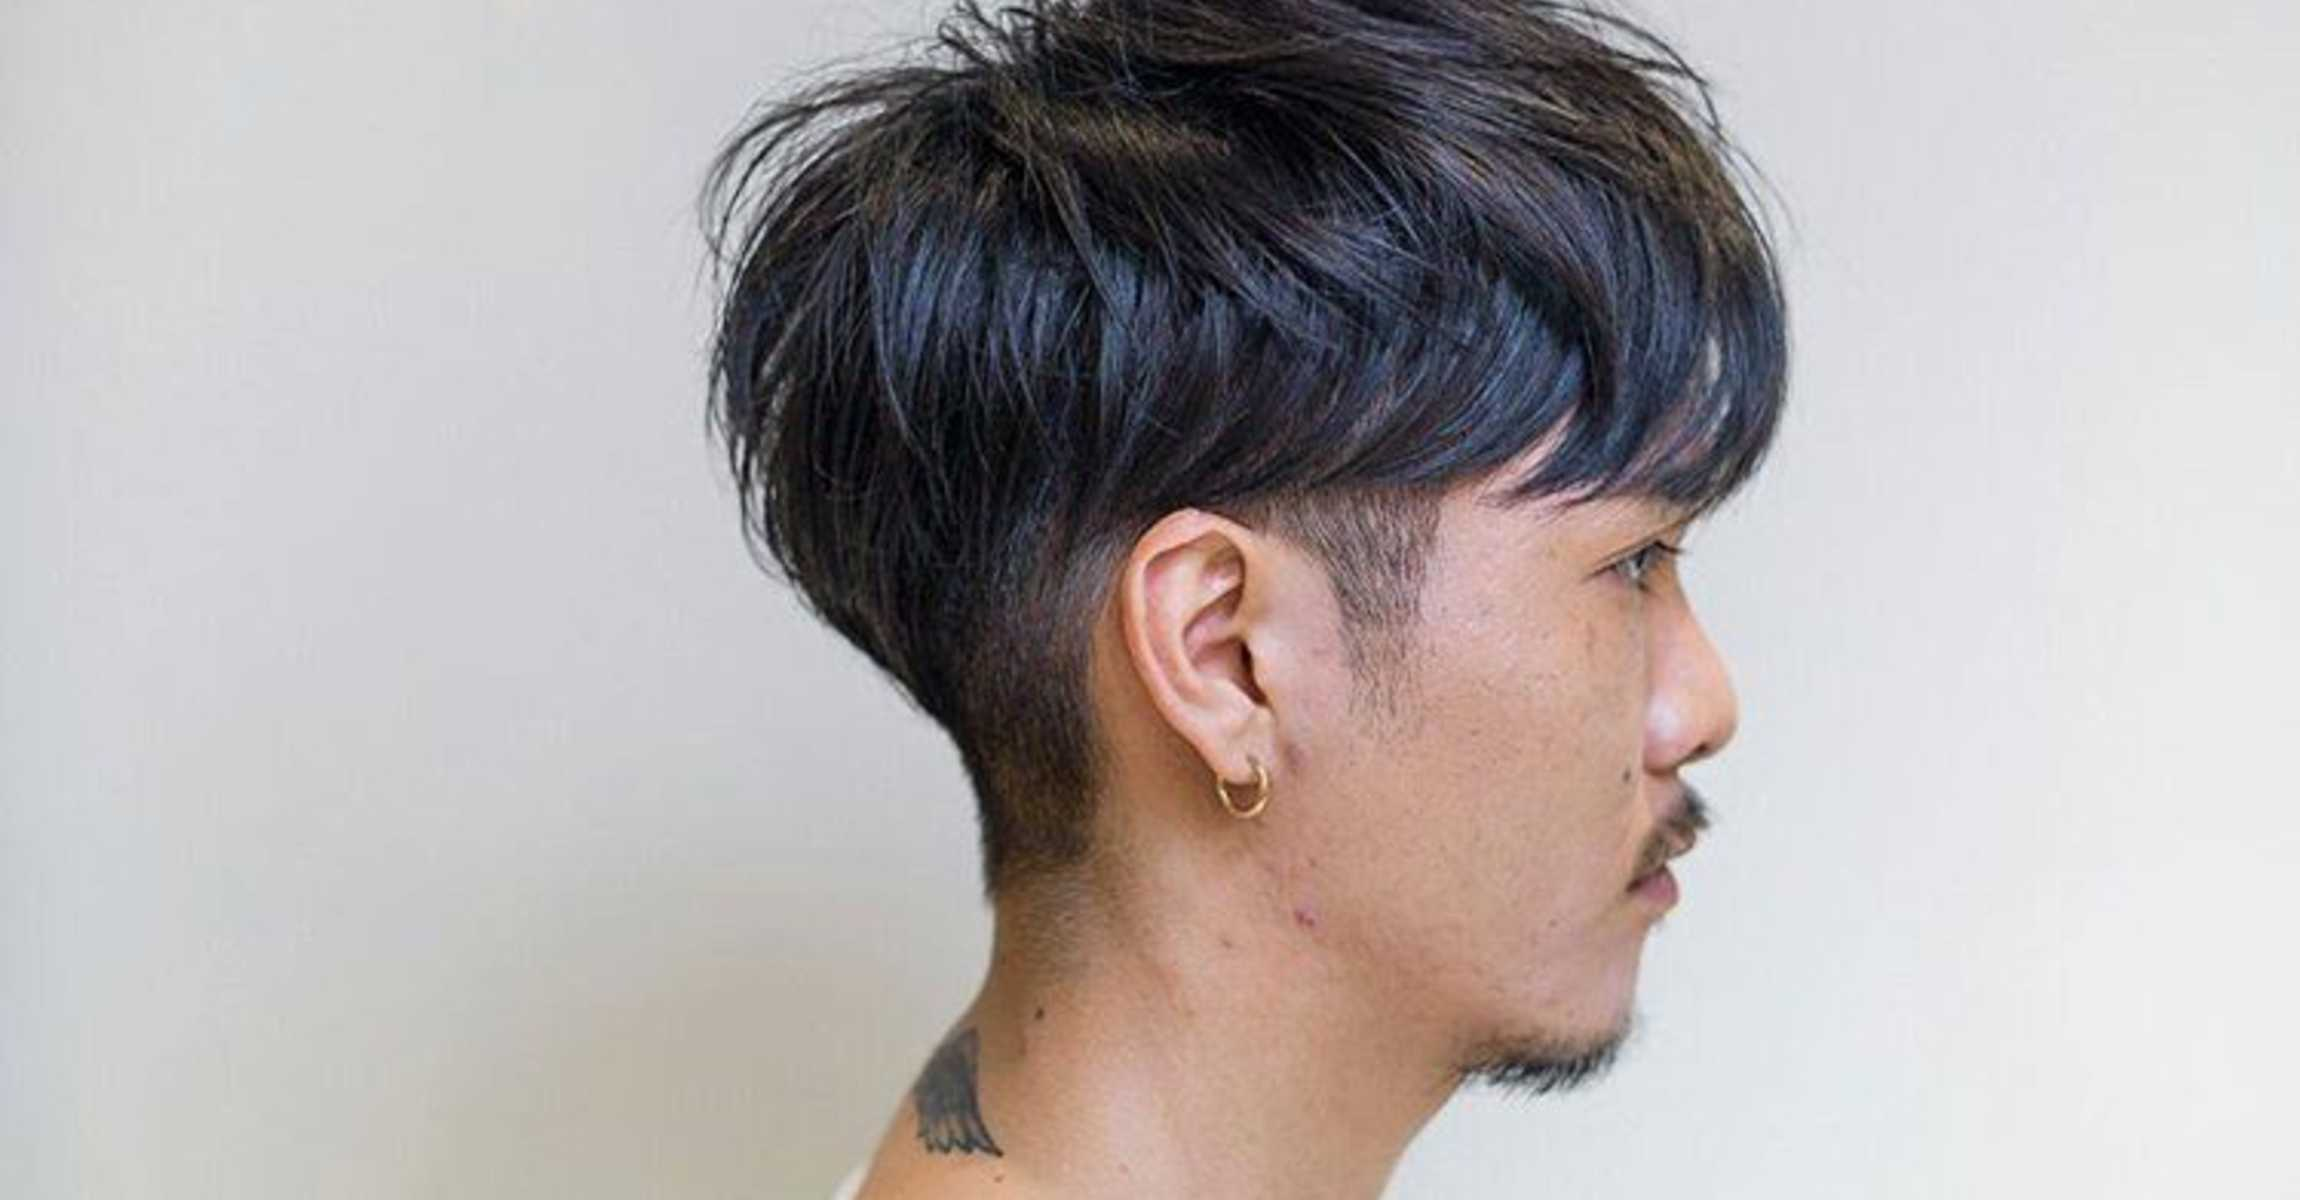 Asian Dudes, Where Do You Get Your Haircuts? : Bayarea